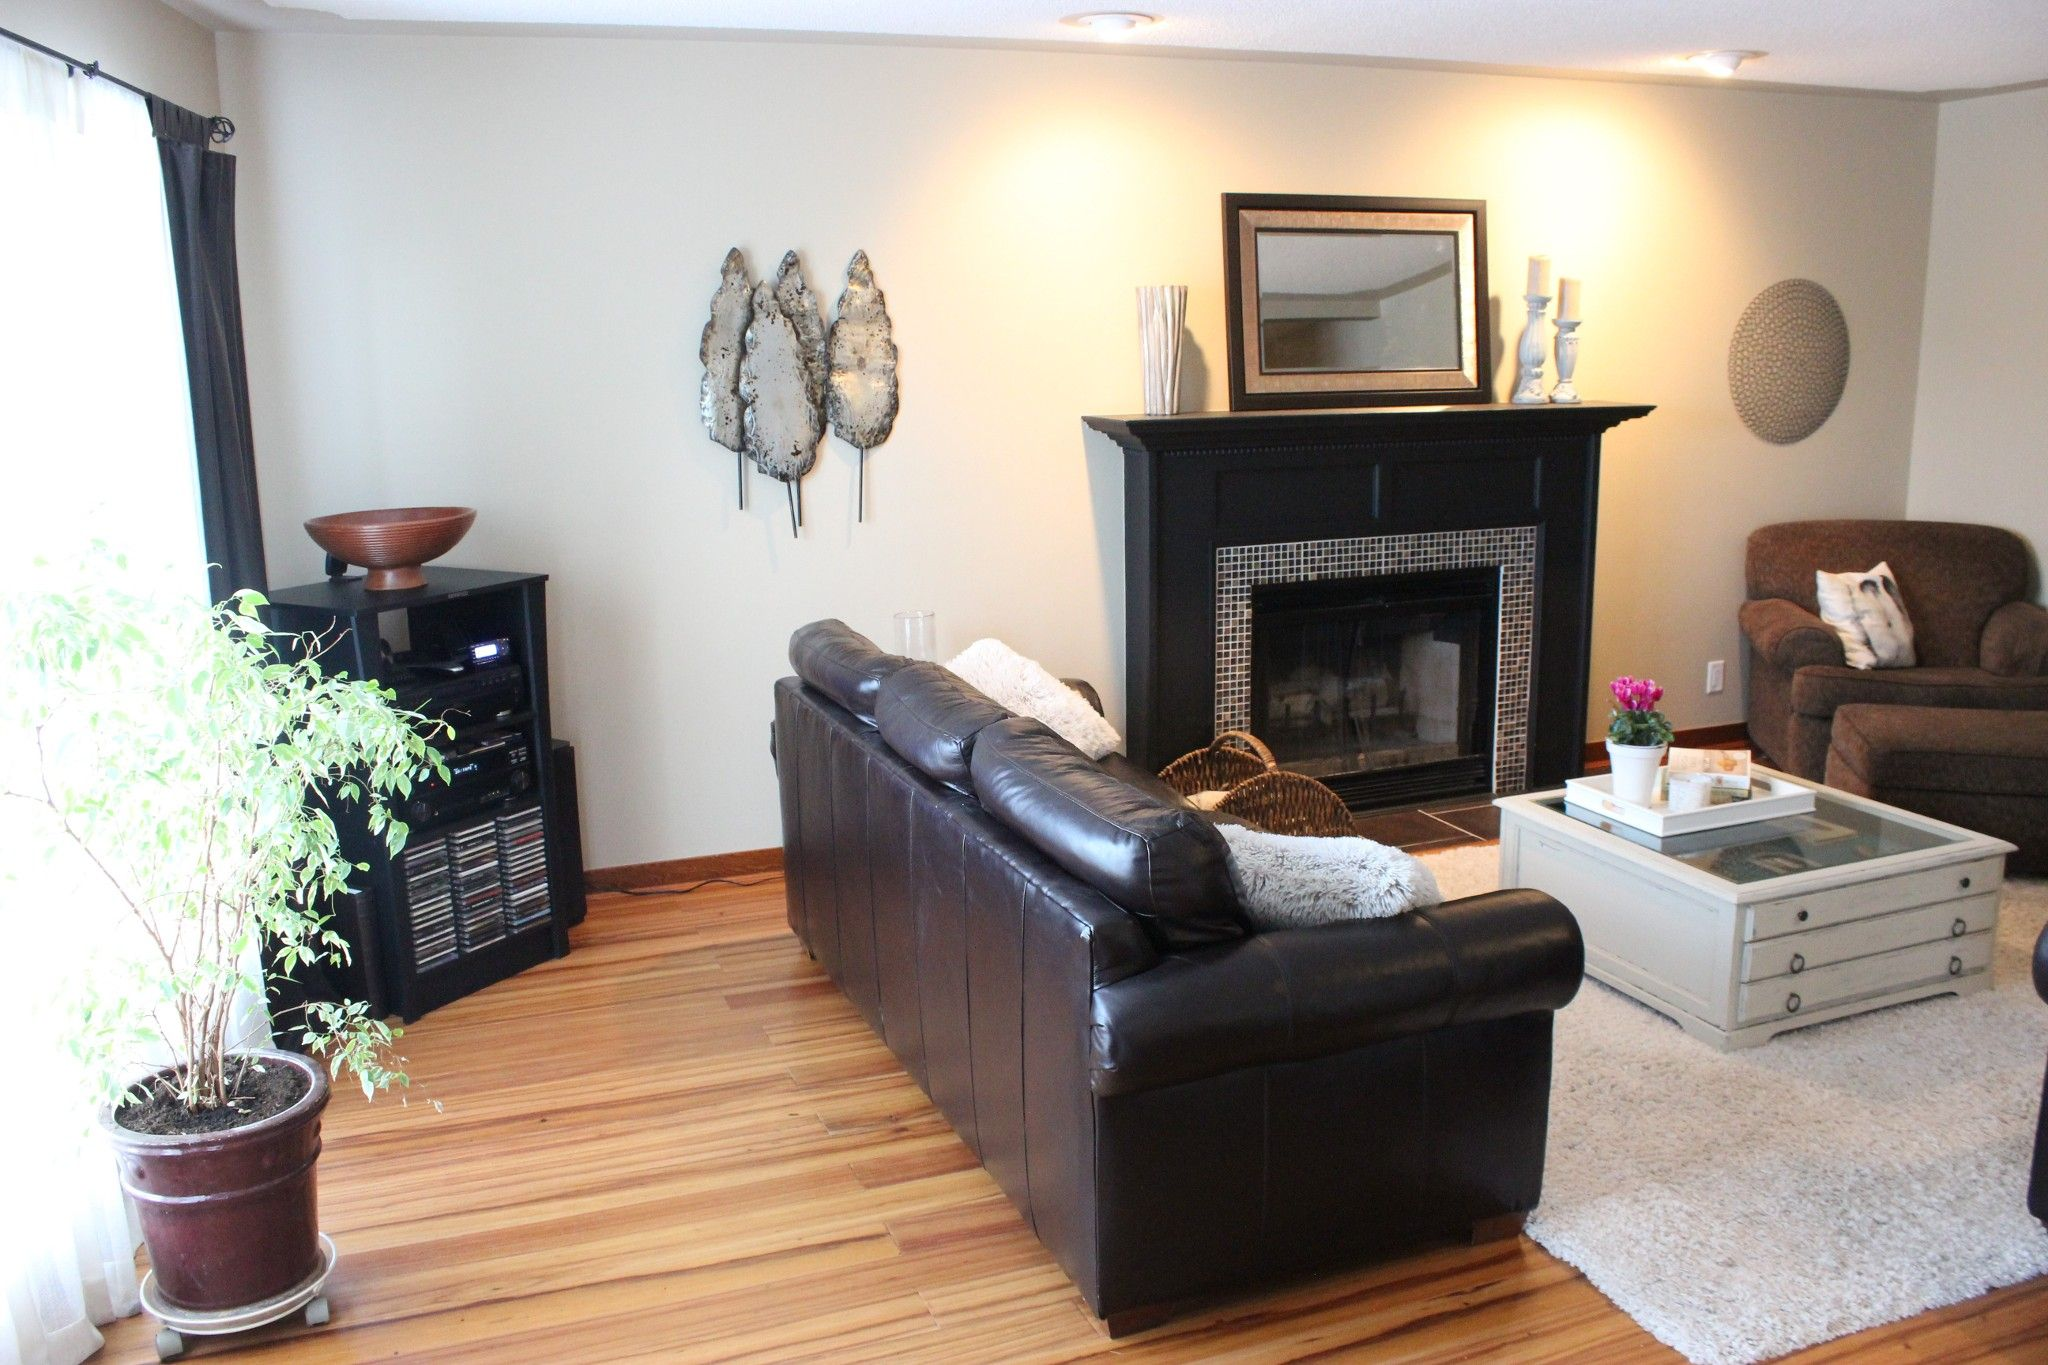 Photo 4: Photos: 3461 Navatanee Drive in Kamloops: South Thompson Valley House for sale : MLS®# 150033